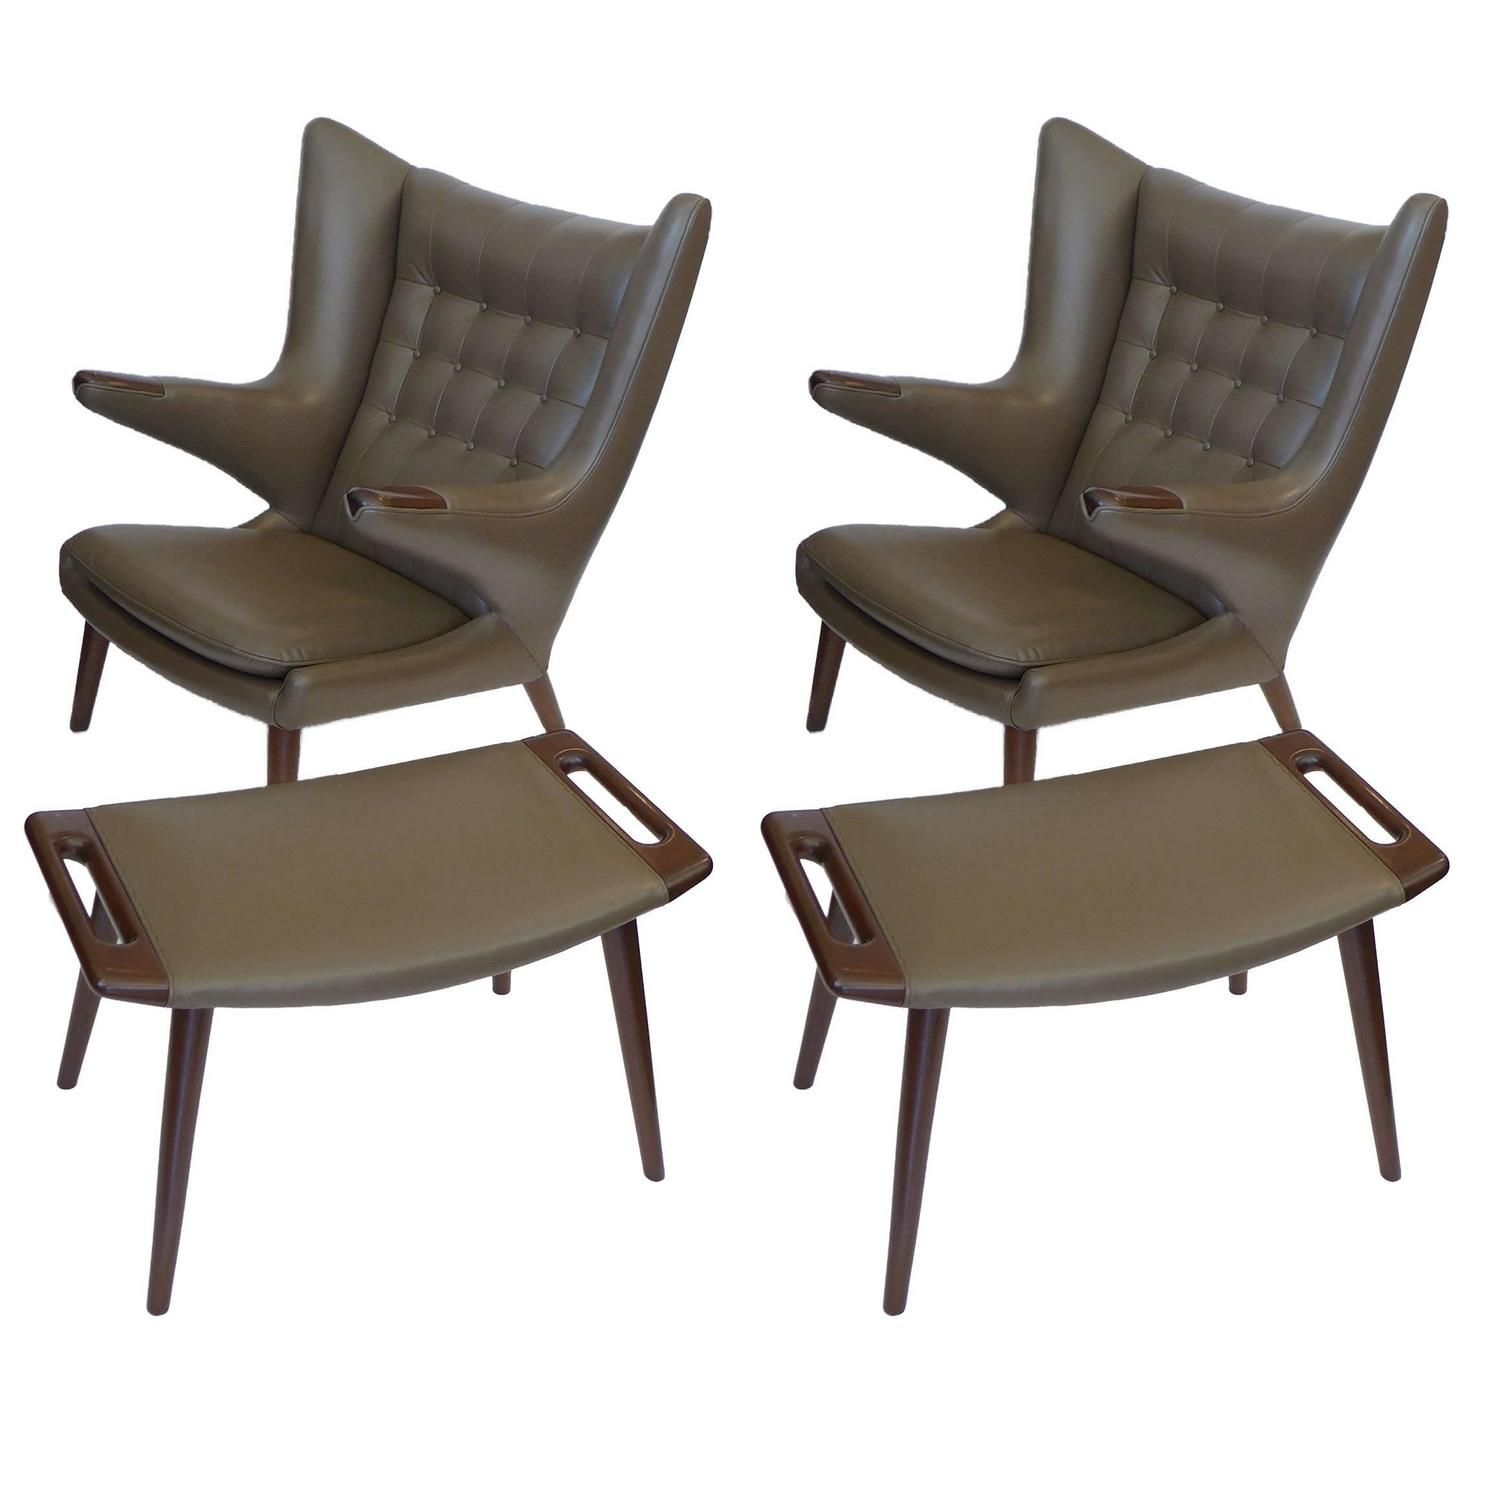 Pair of Early Original Hans Wegner Papa Bear Chairs w/ Ottomans in Taupe Leather